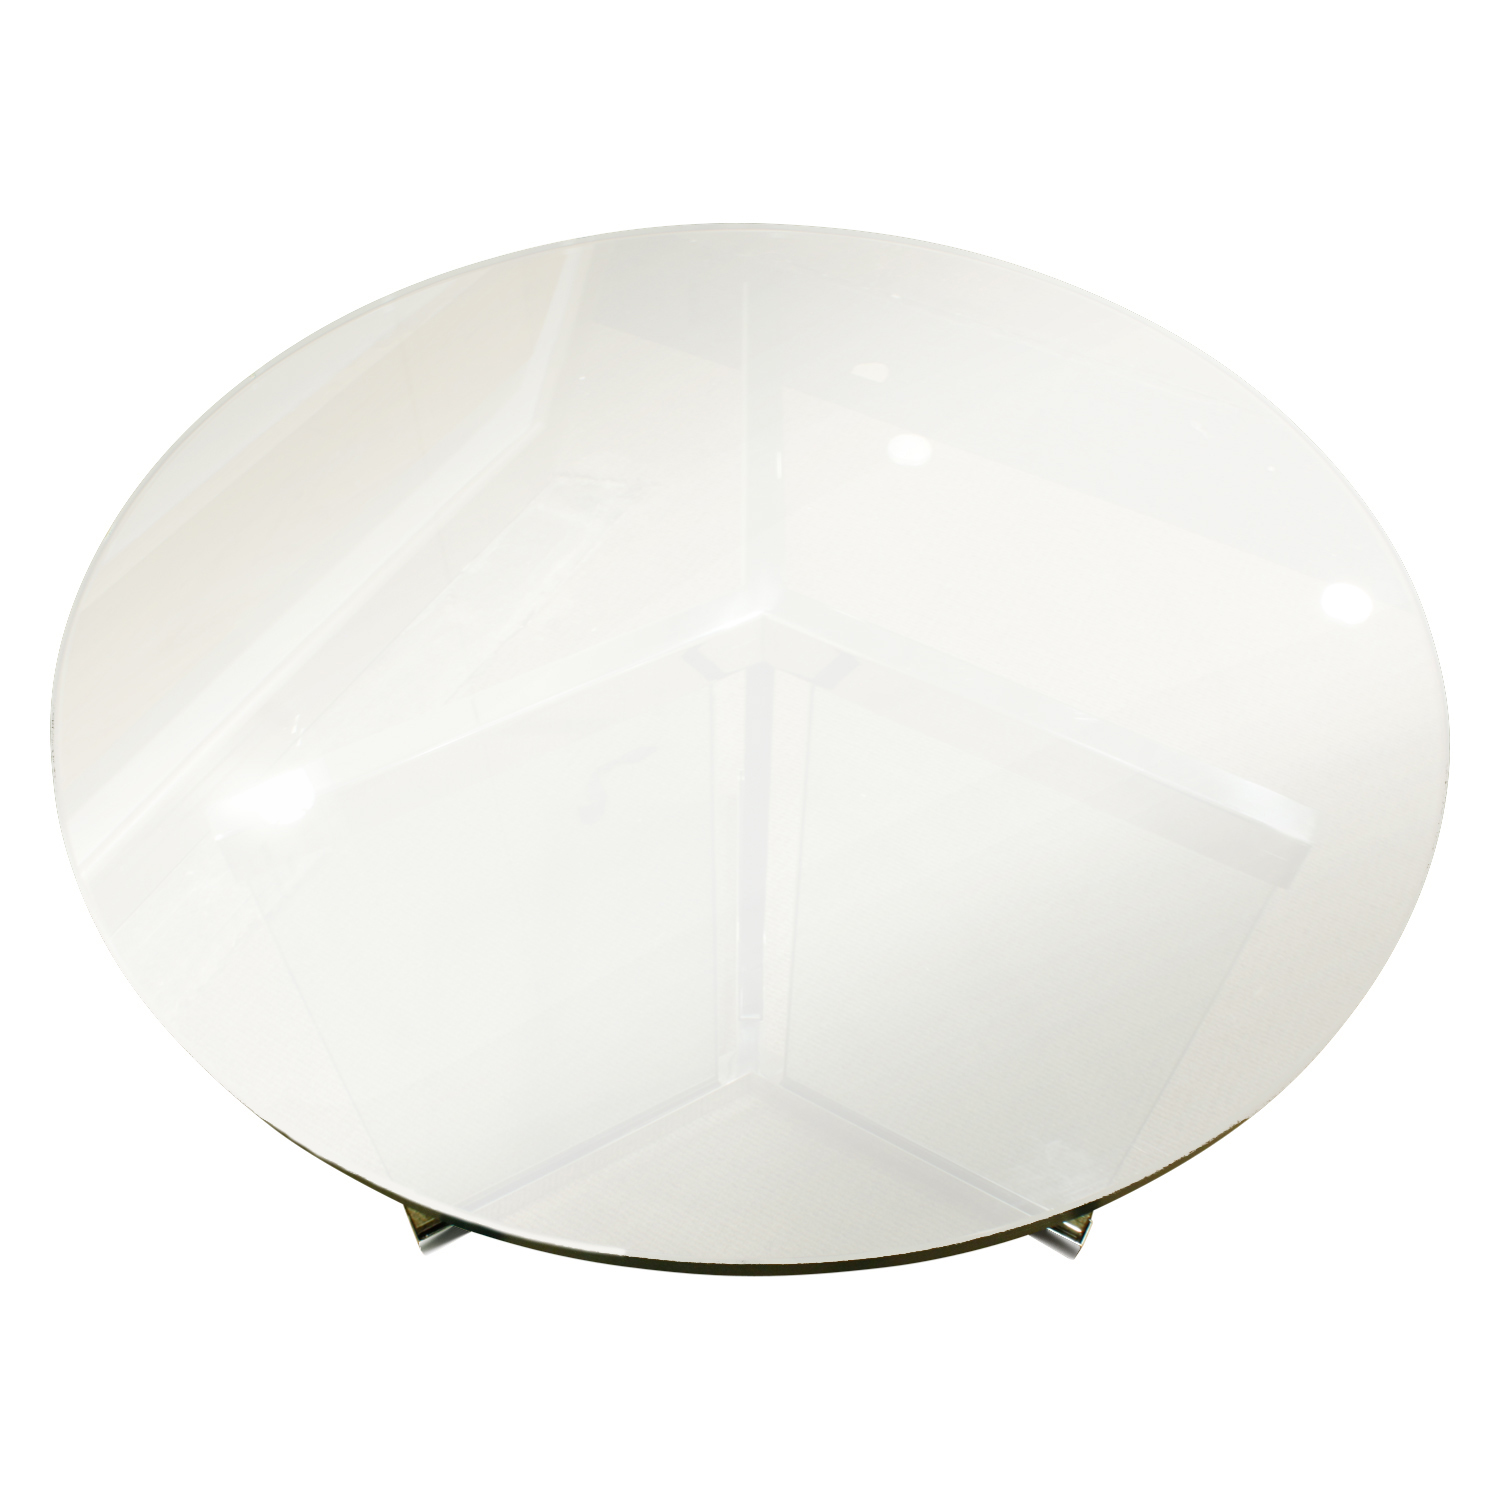 Pace 65 thickglass+chrome endtable183 top.JPG